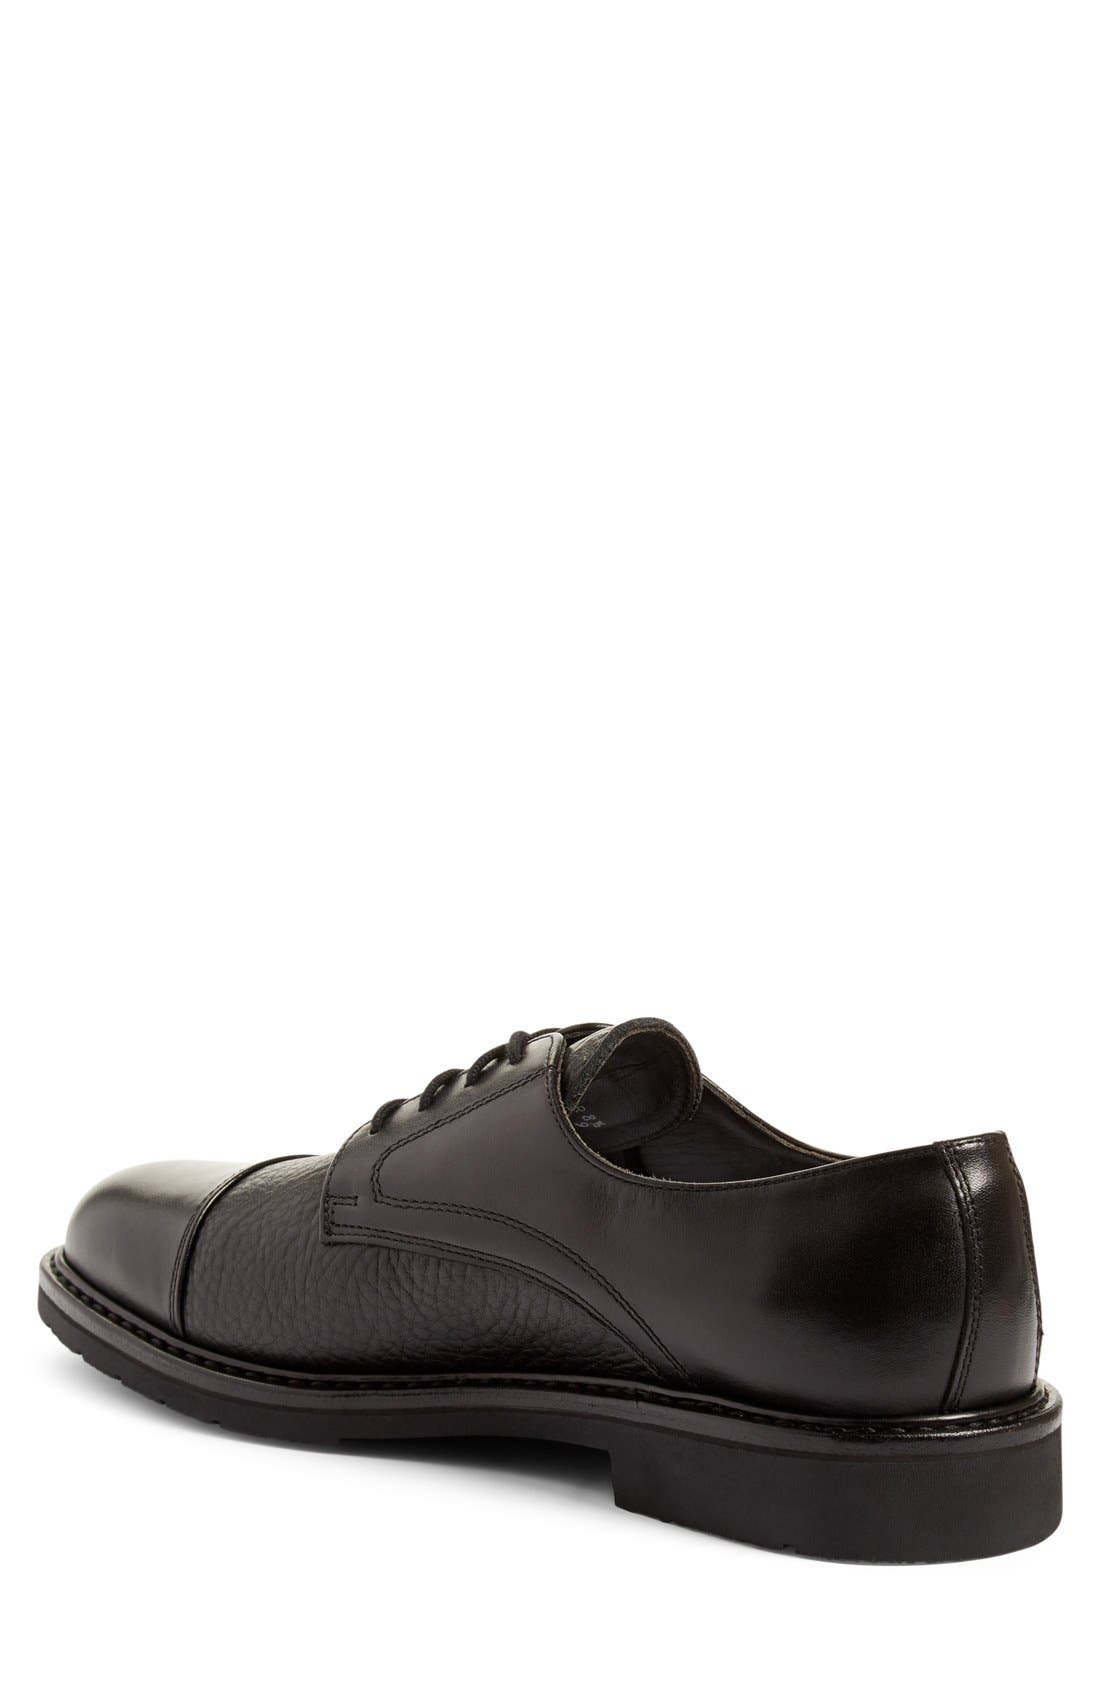 MEPHISTO, 'Melchior' Cap Toe Derby, Alternate thumbnail 3, color, BLACK LEATHER